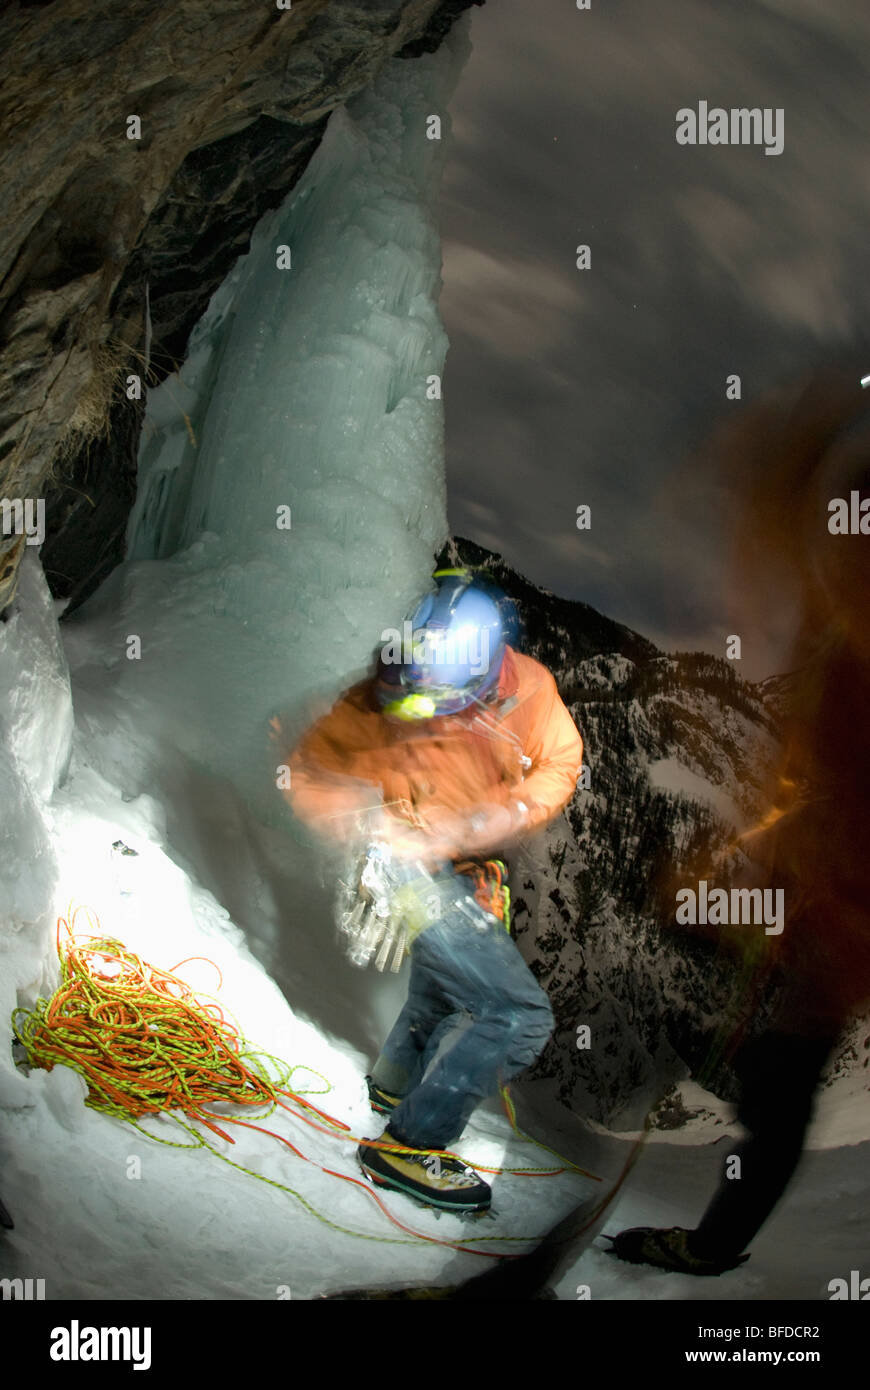 A young man prepares for ice climbing at night with a headlamp near Ouray, Colorado. - Stock Image